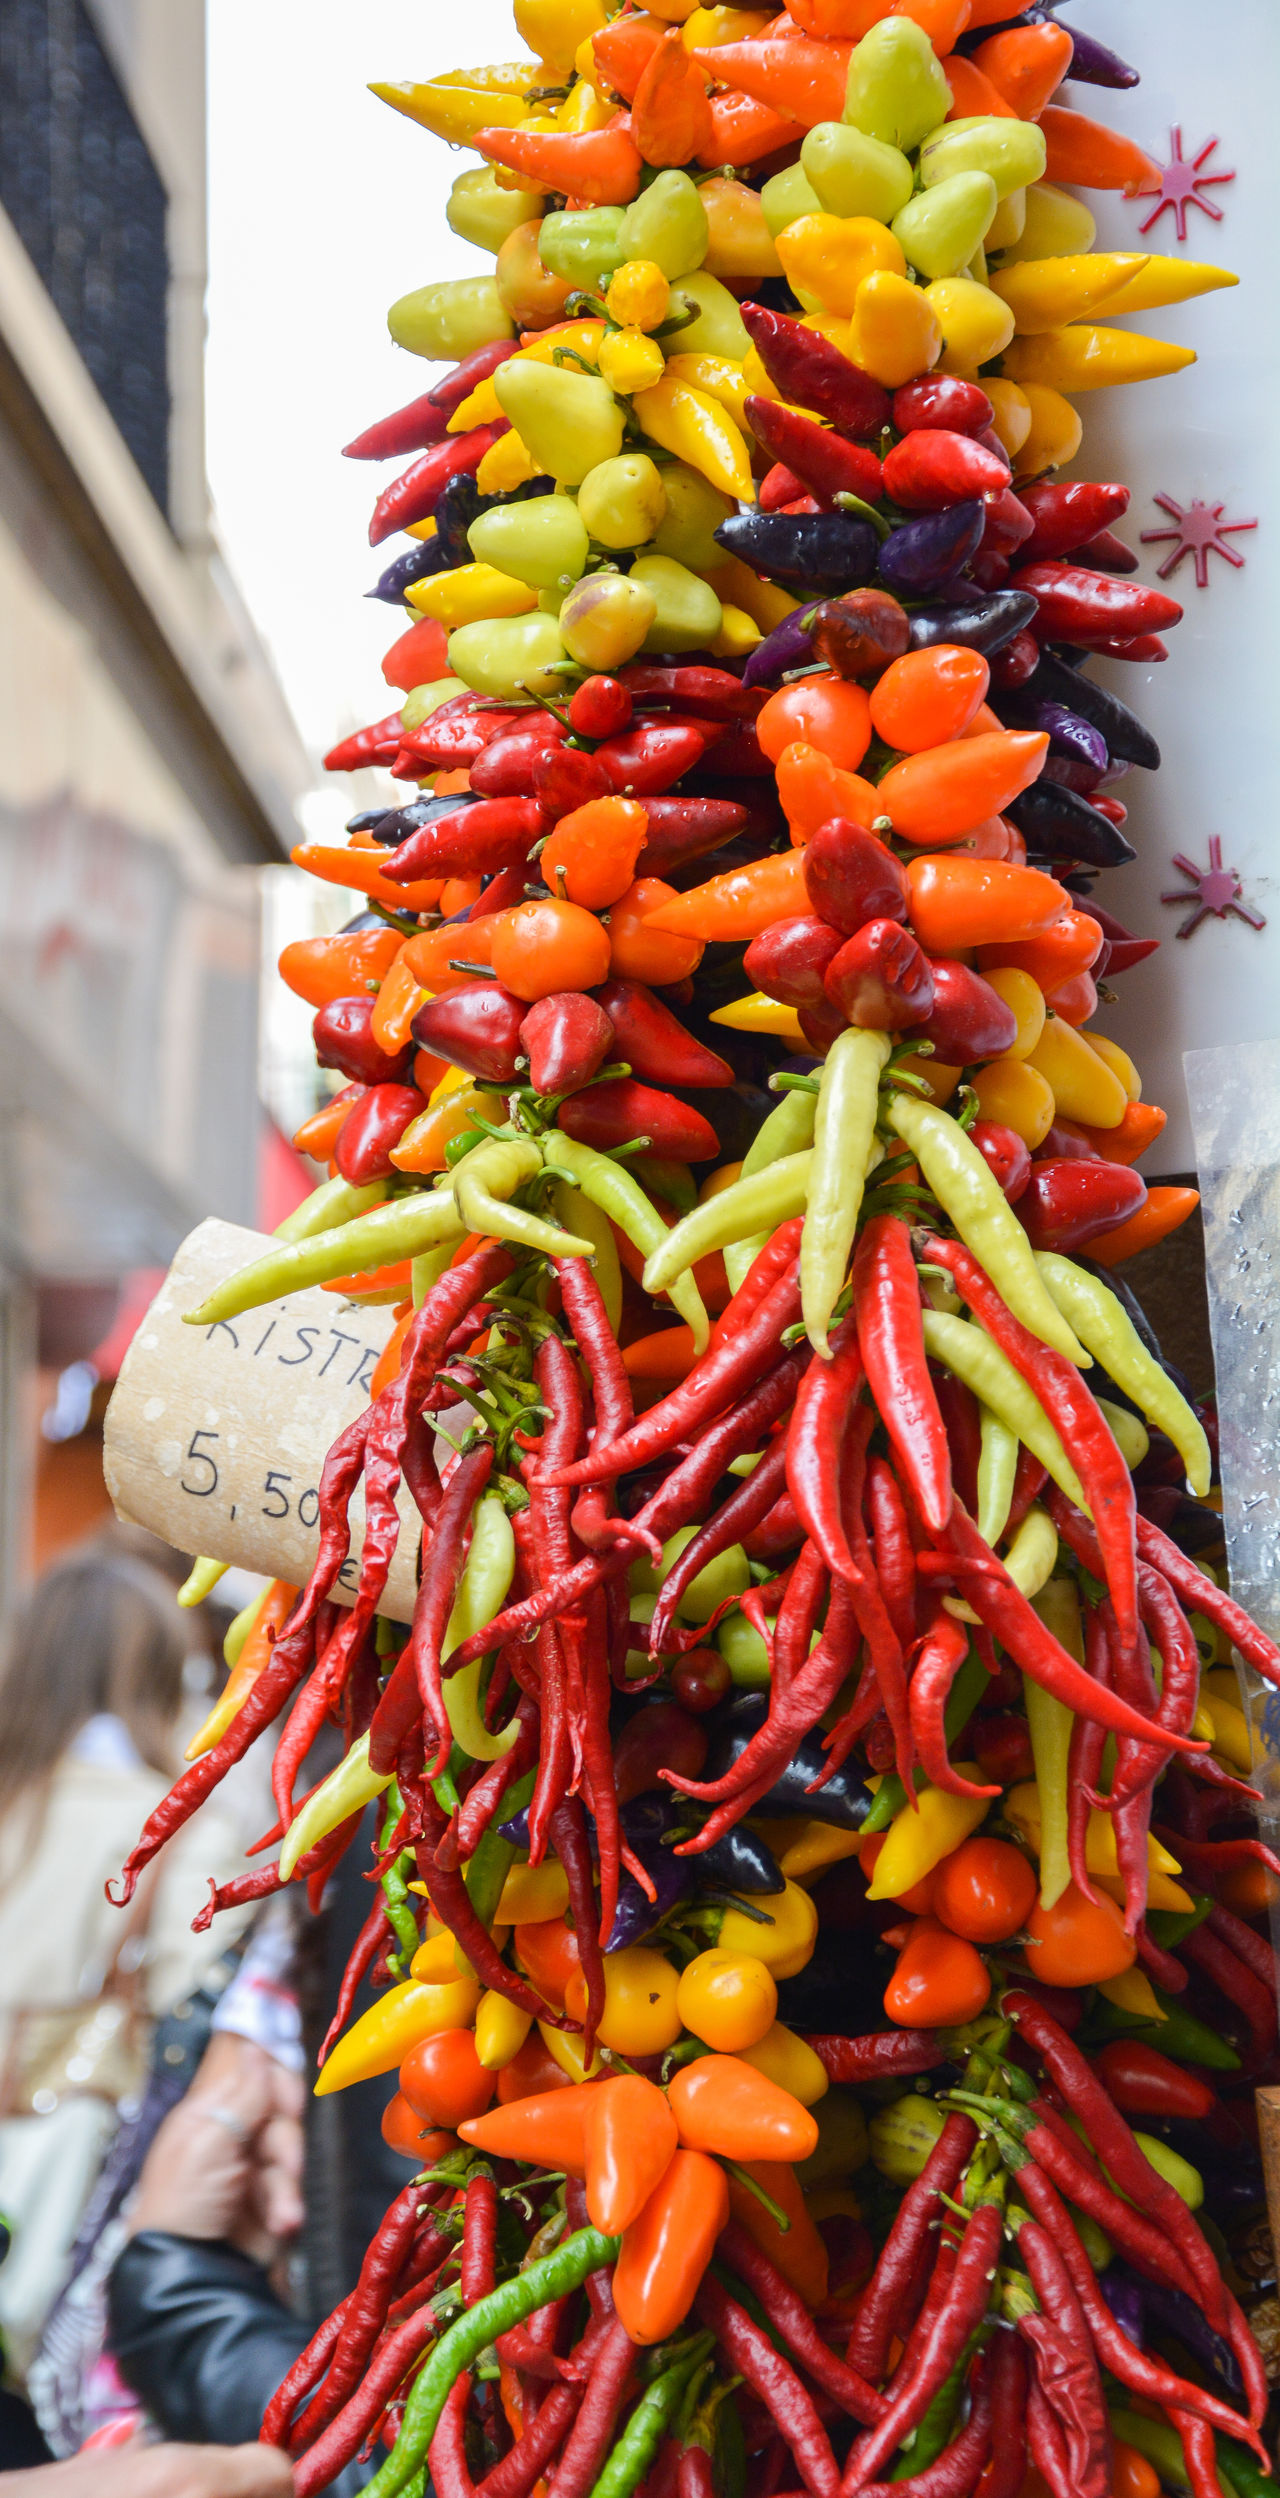 EyeEmNewHere Paprika Paprikas Mallorca SPAIN Spice Food Spicy Paprika Vampires Onion Streetfood Foodtruck Salad Bunch Colorful Colourful Closeup Macro Healthyeating Fit Fitness Gym Chilli Chillipepper